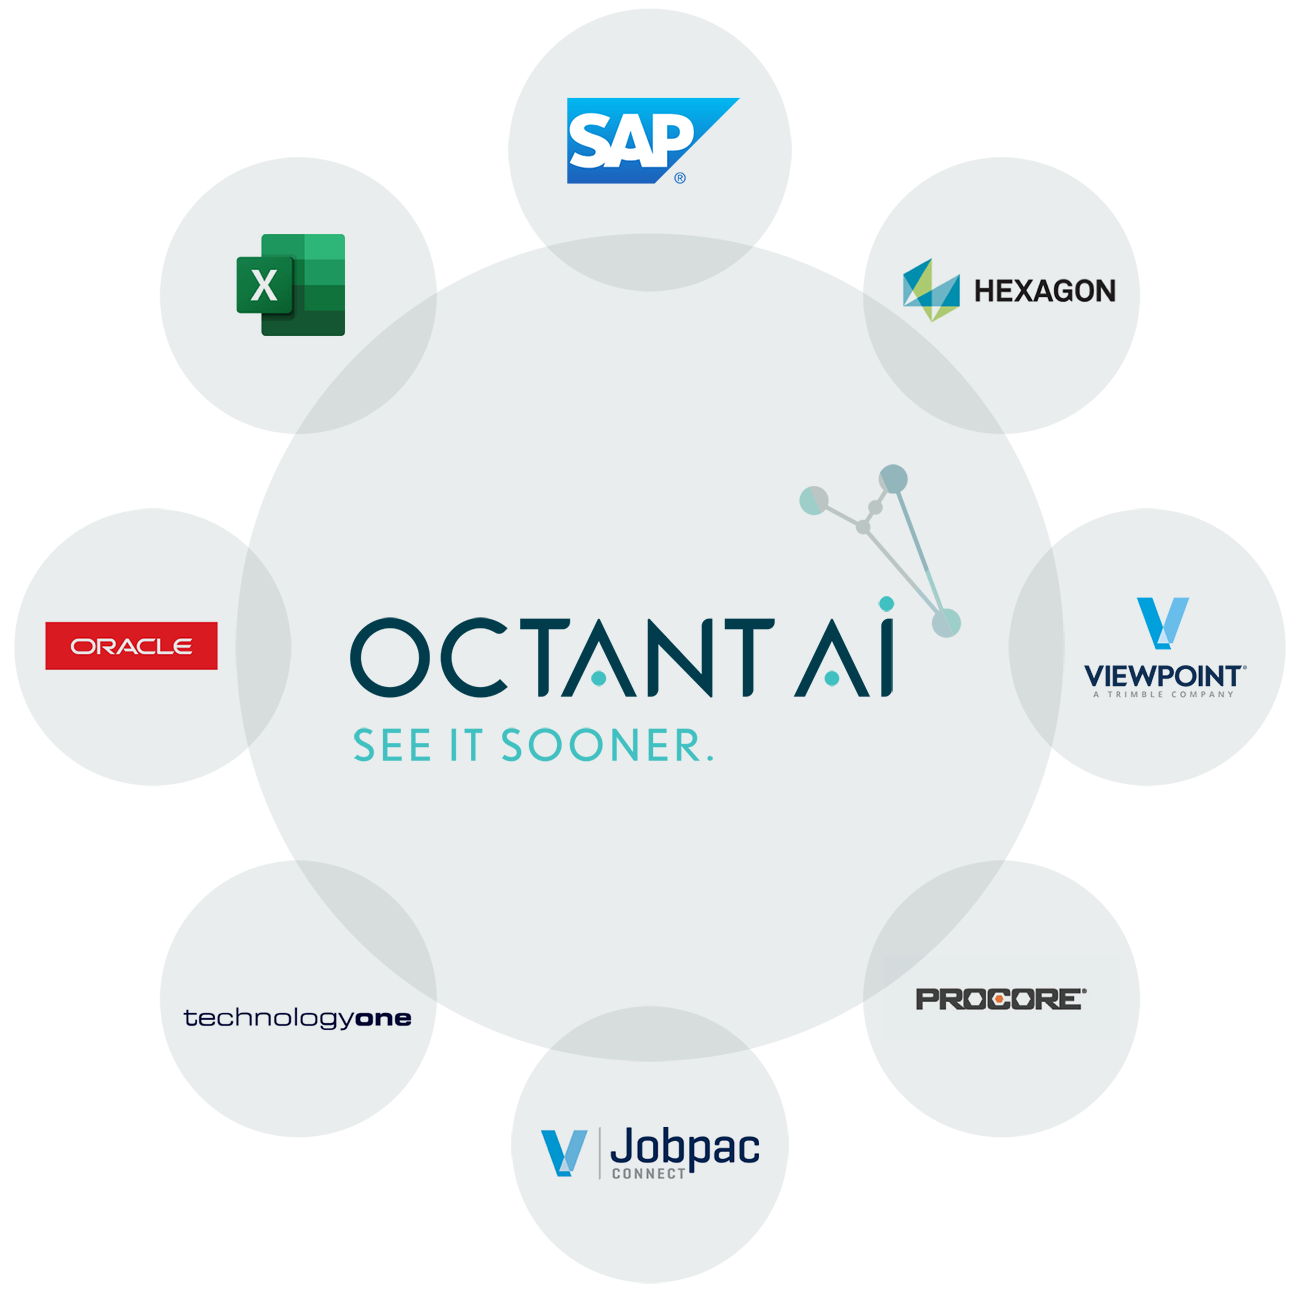 works with oracle, technology one, jobpac, viewpoint, procore, SAP and more